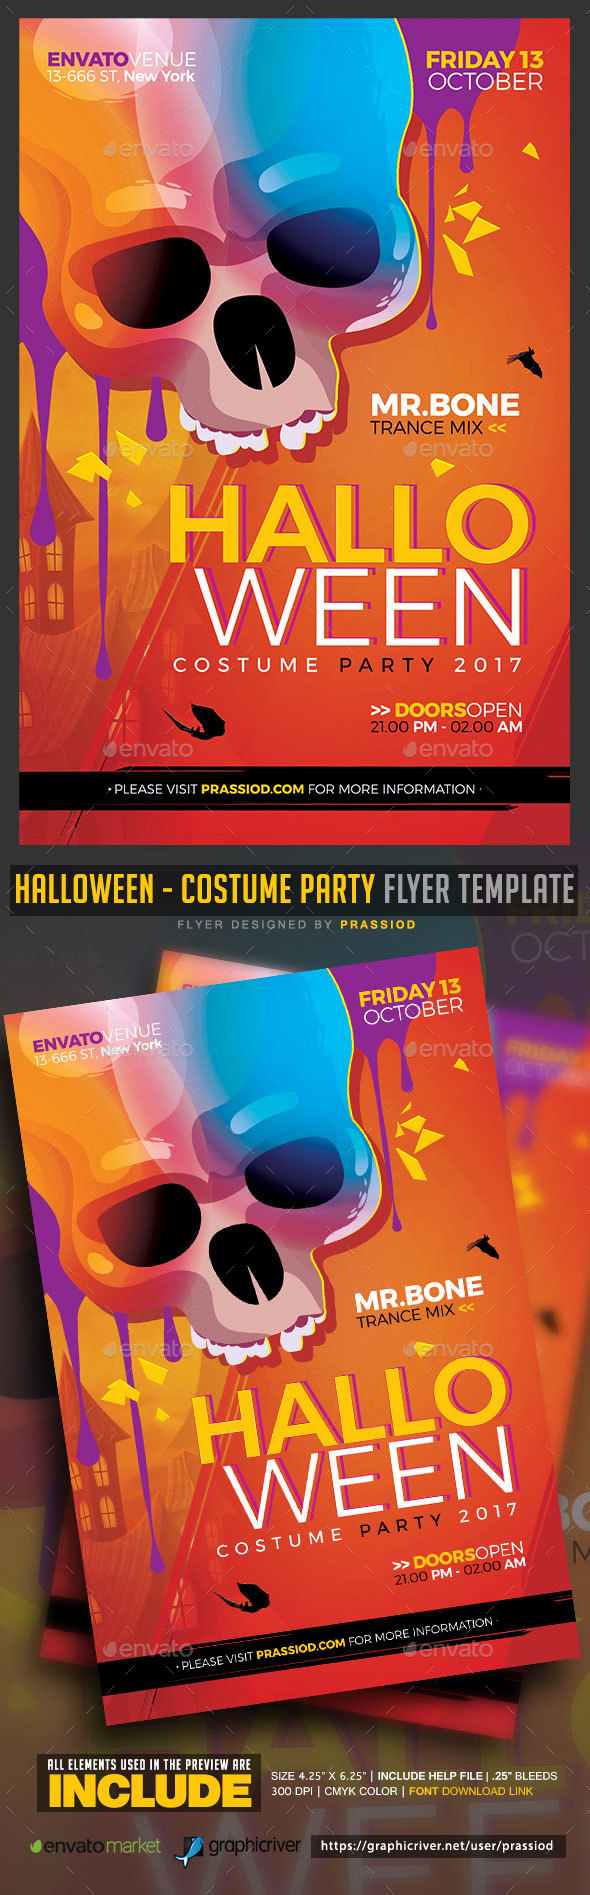 Halloween - Costume Party Flyer Template